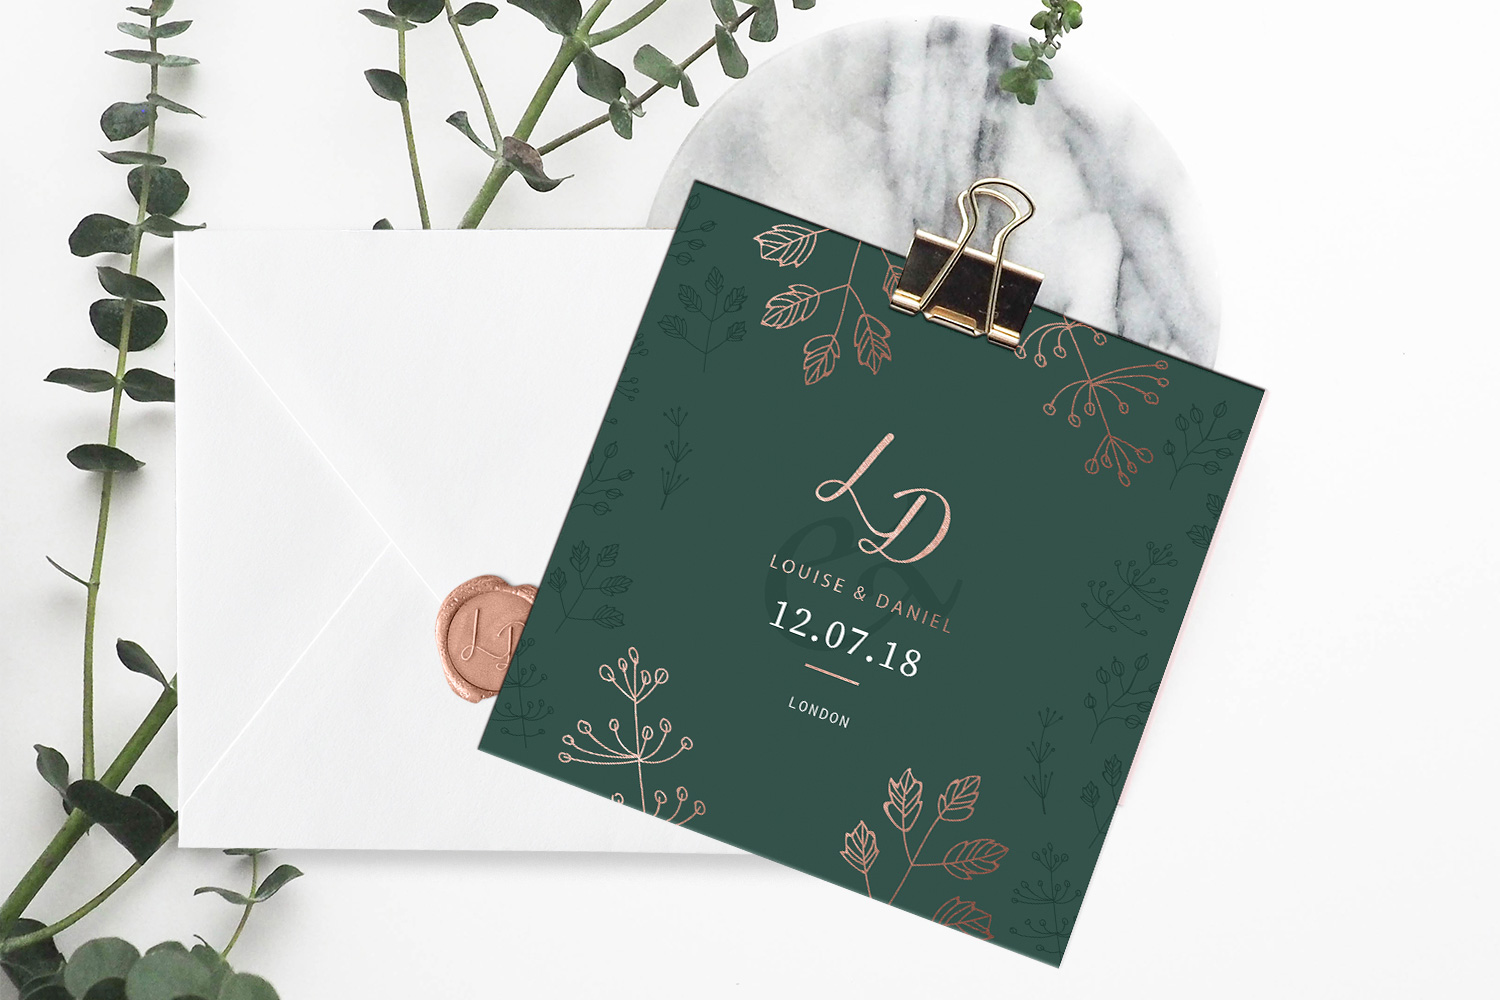 Greeting-Card-Mockup3